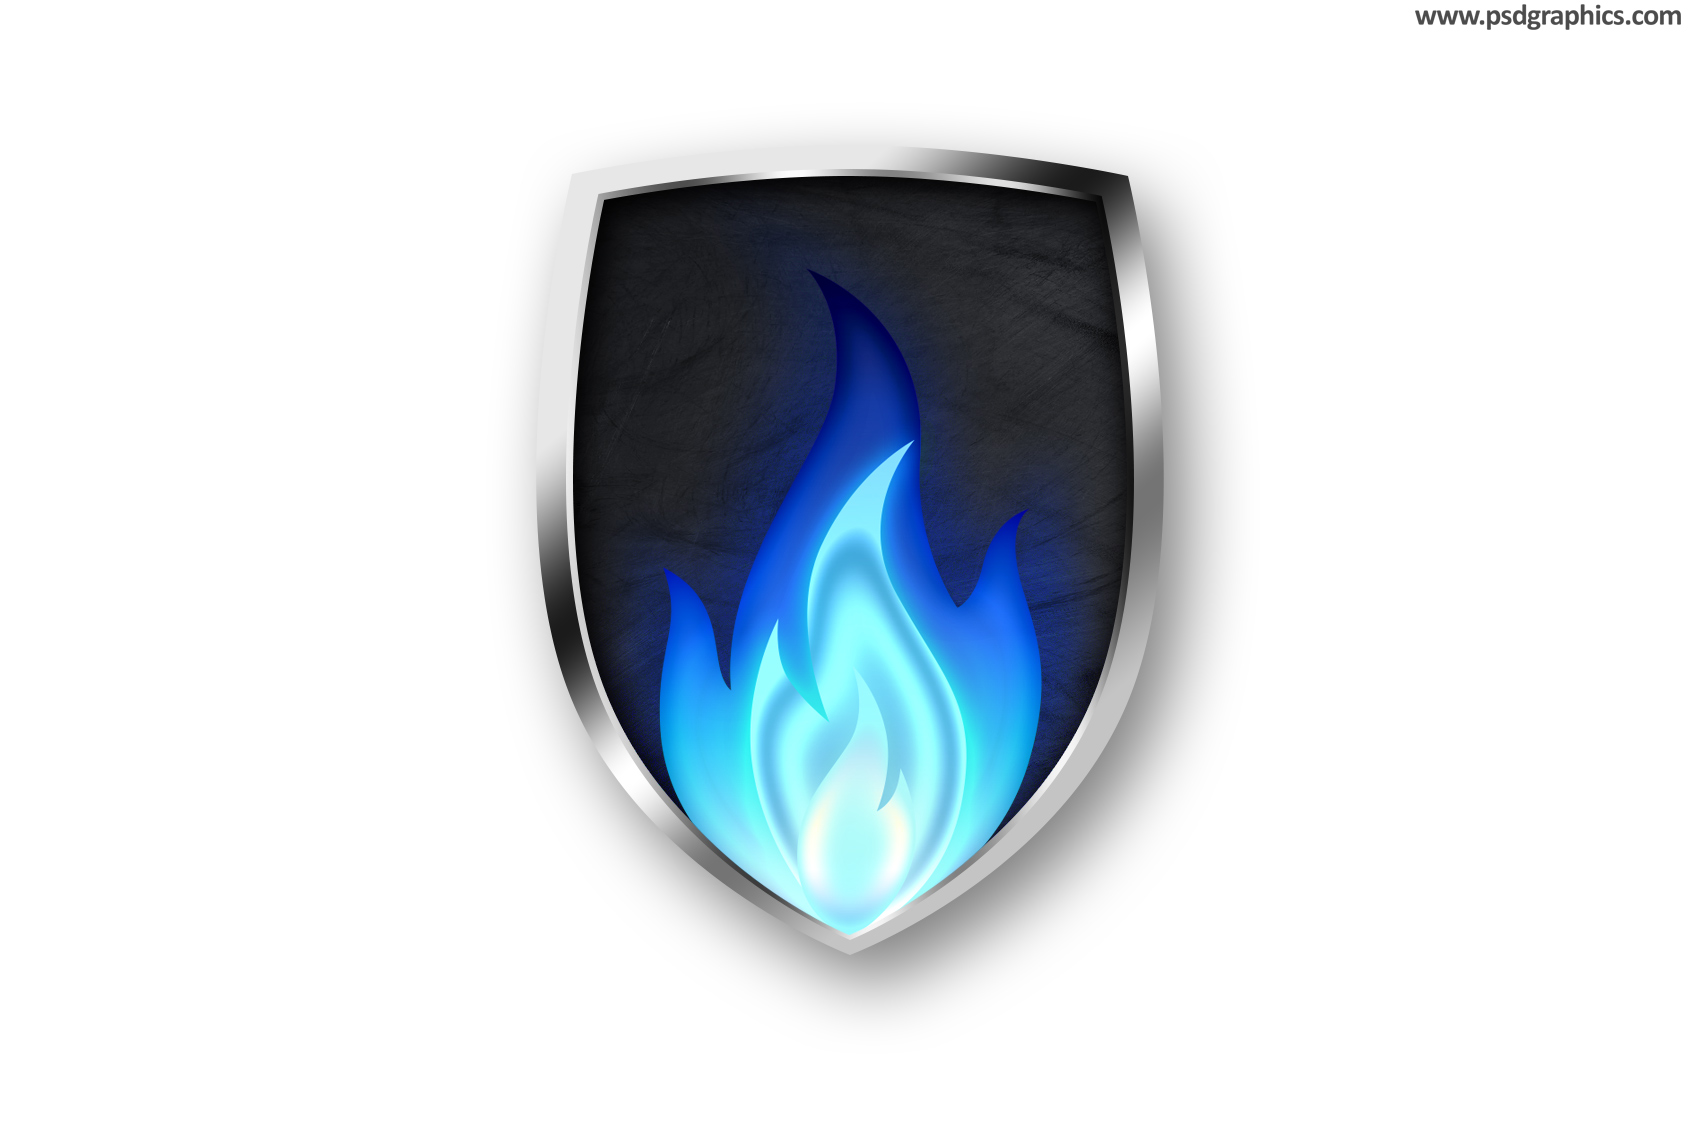 Fire shield icon psd psdgraphics similar or related graphic blank shields psd templates maxwellsz